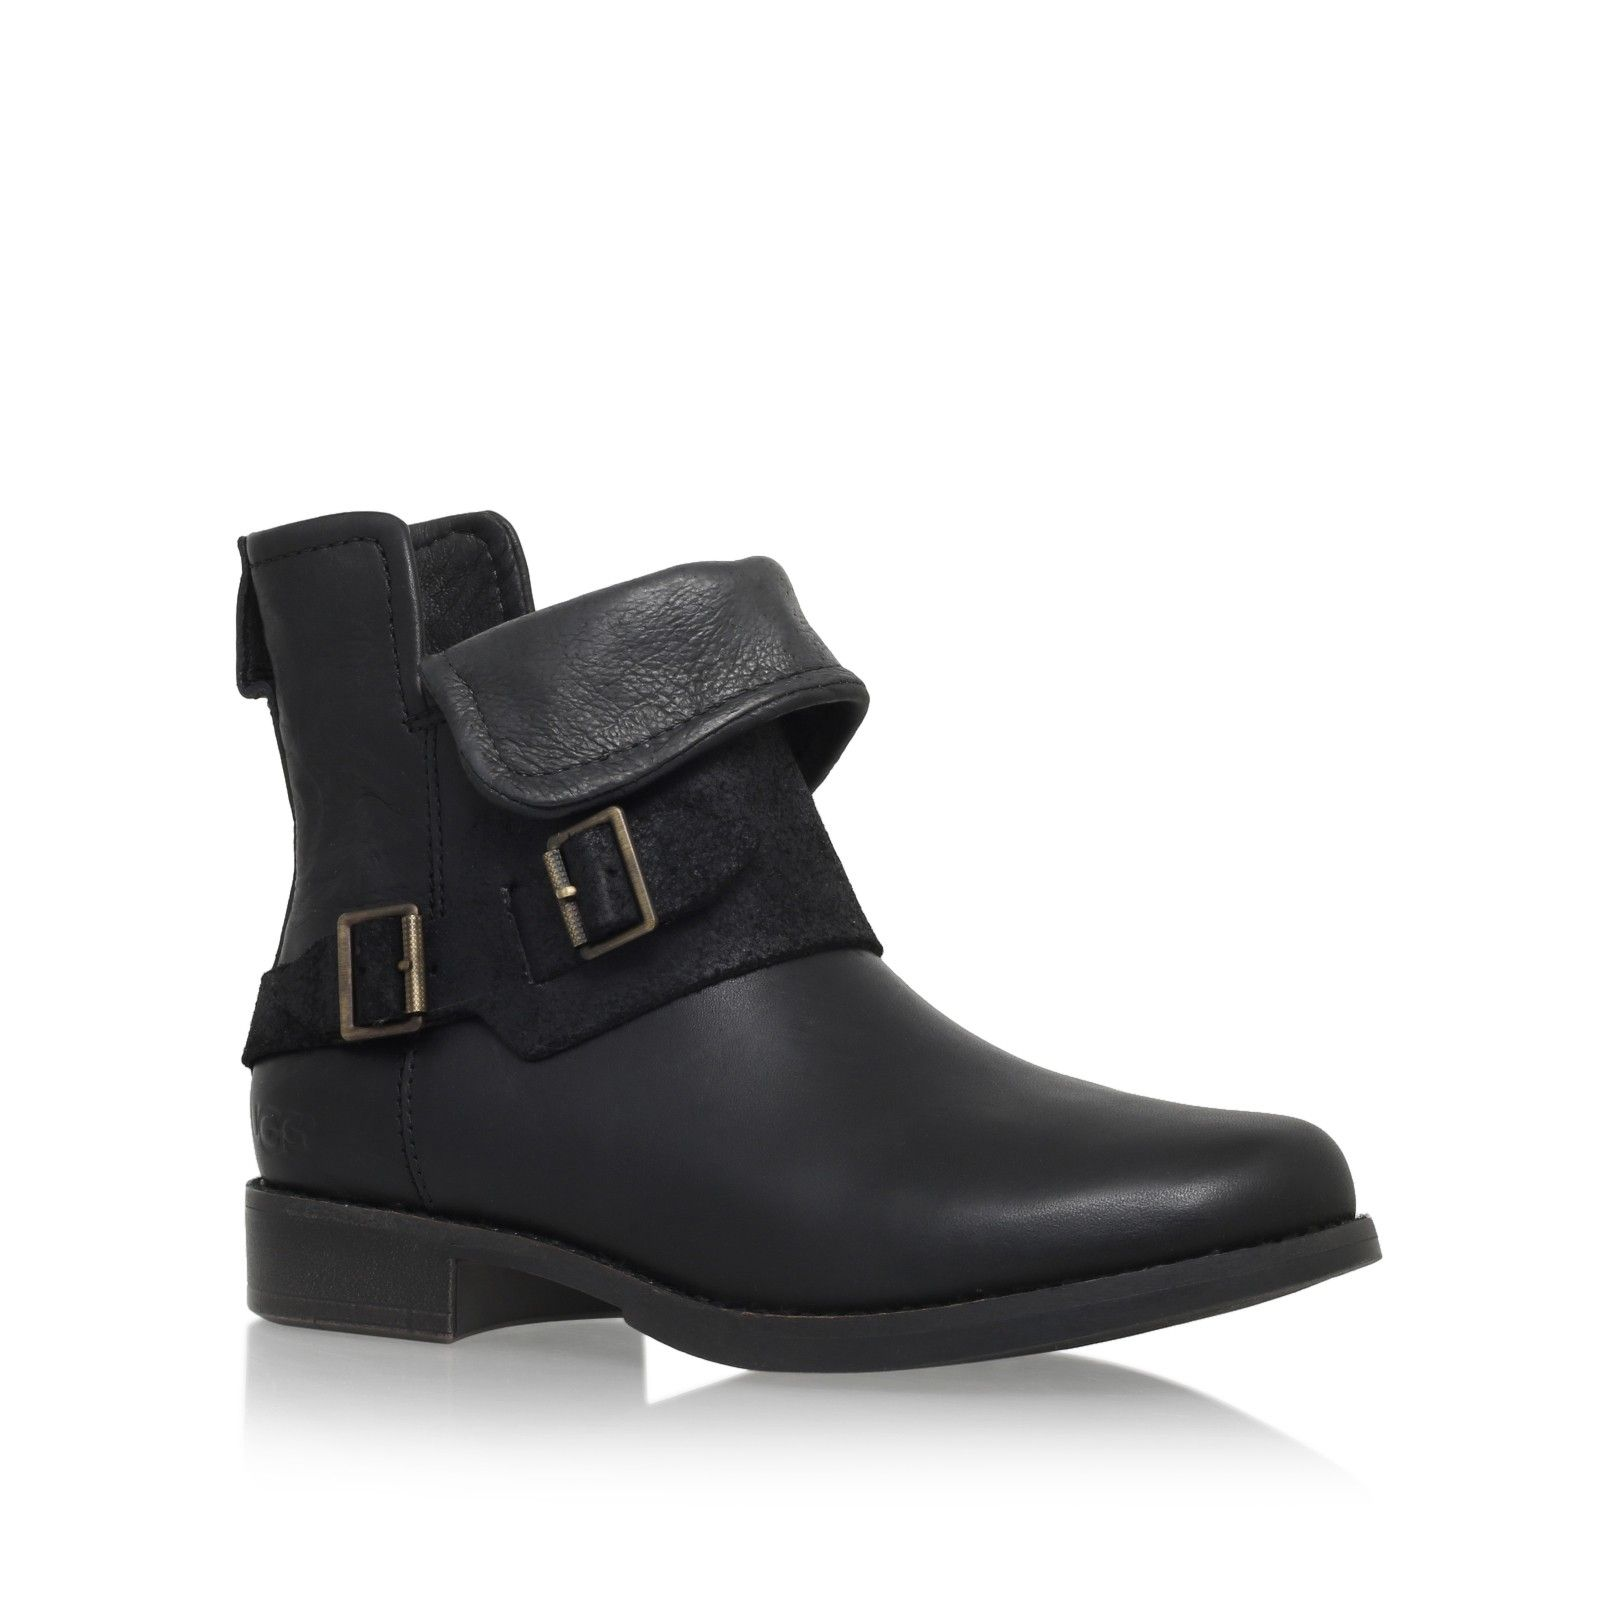 cybele black flat ankle boots from UGG Australia | Clothing ...